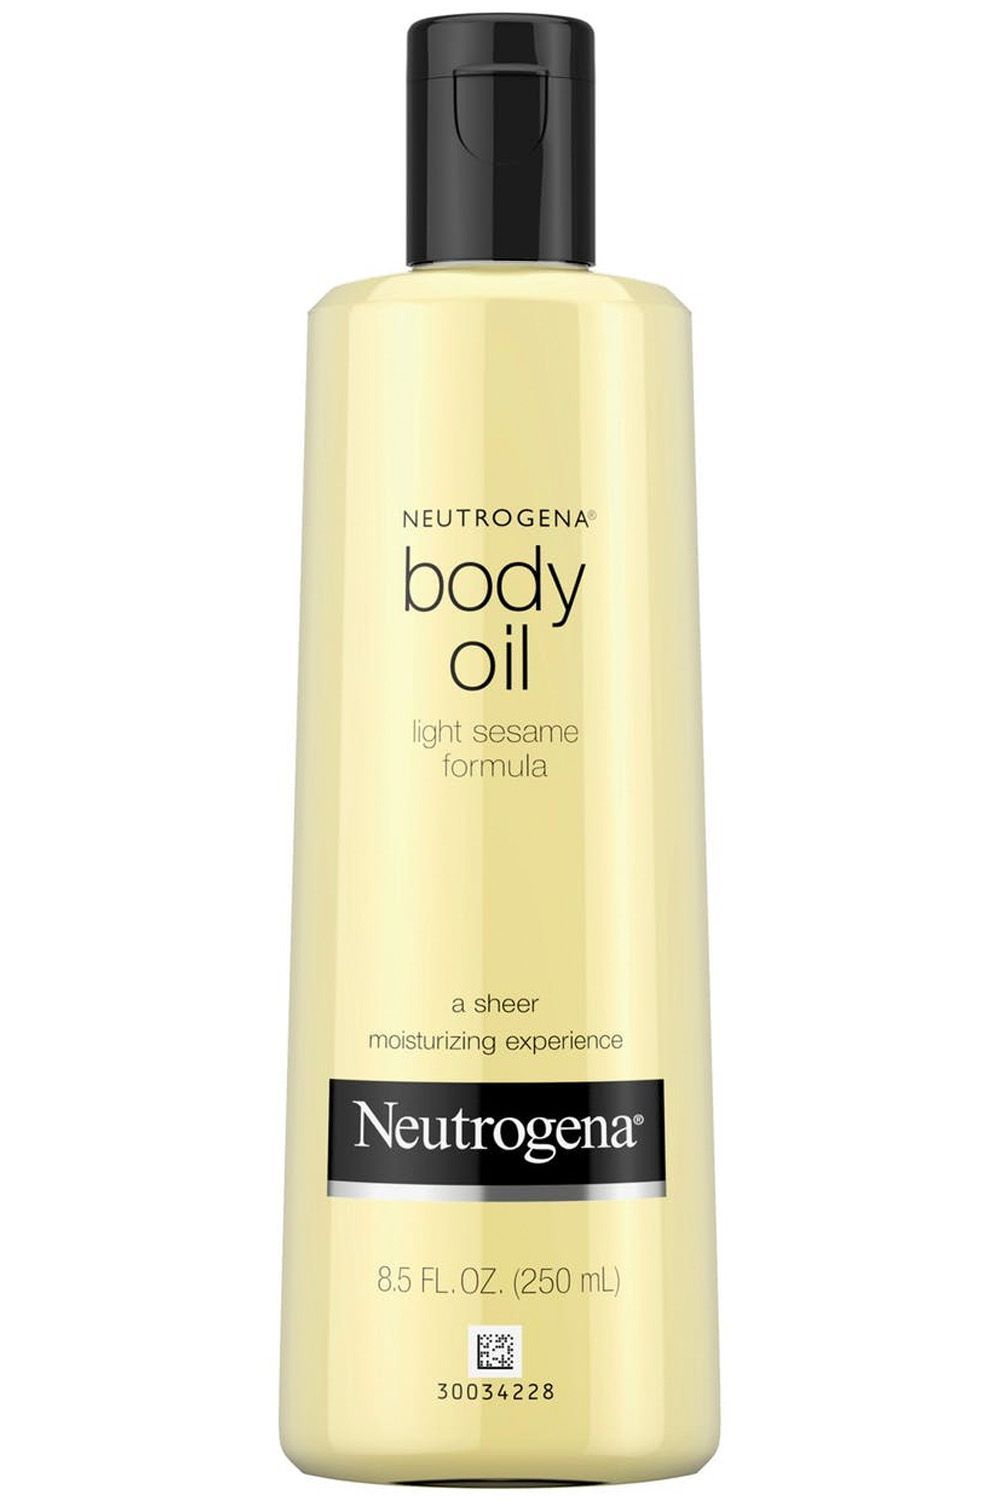 I Promise These Body Oils Won't Completely Ruin Your Clothes Forever